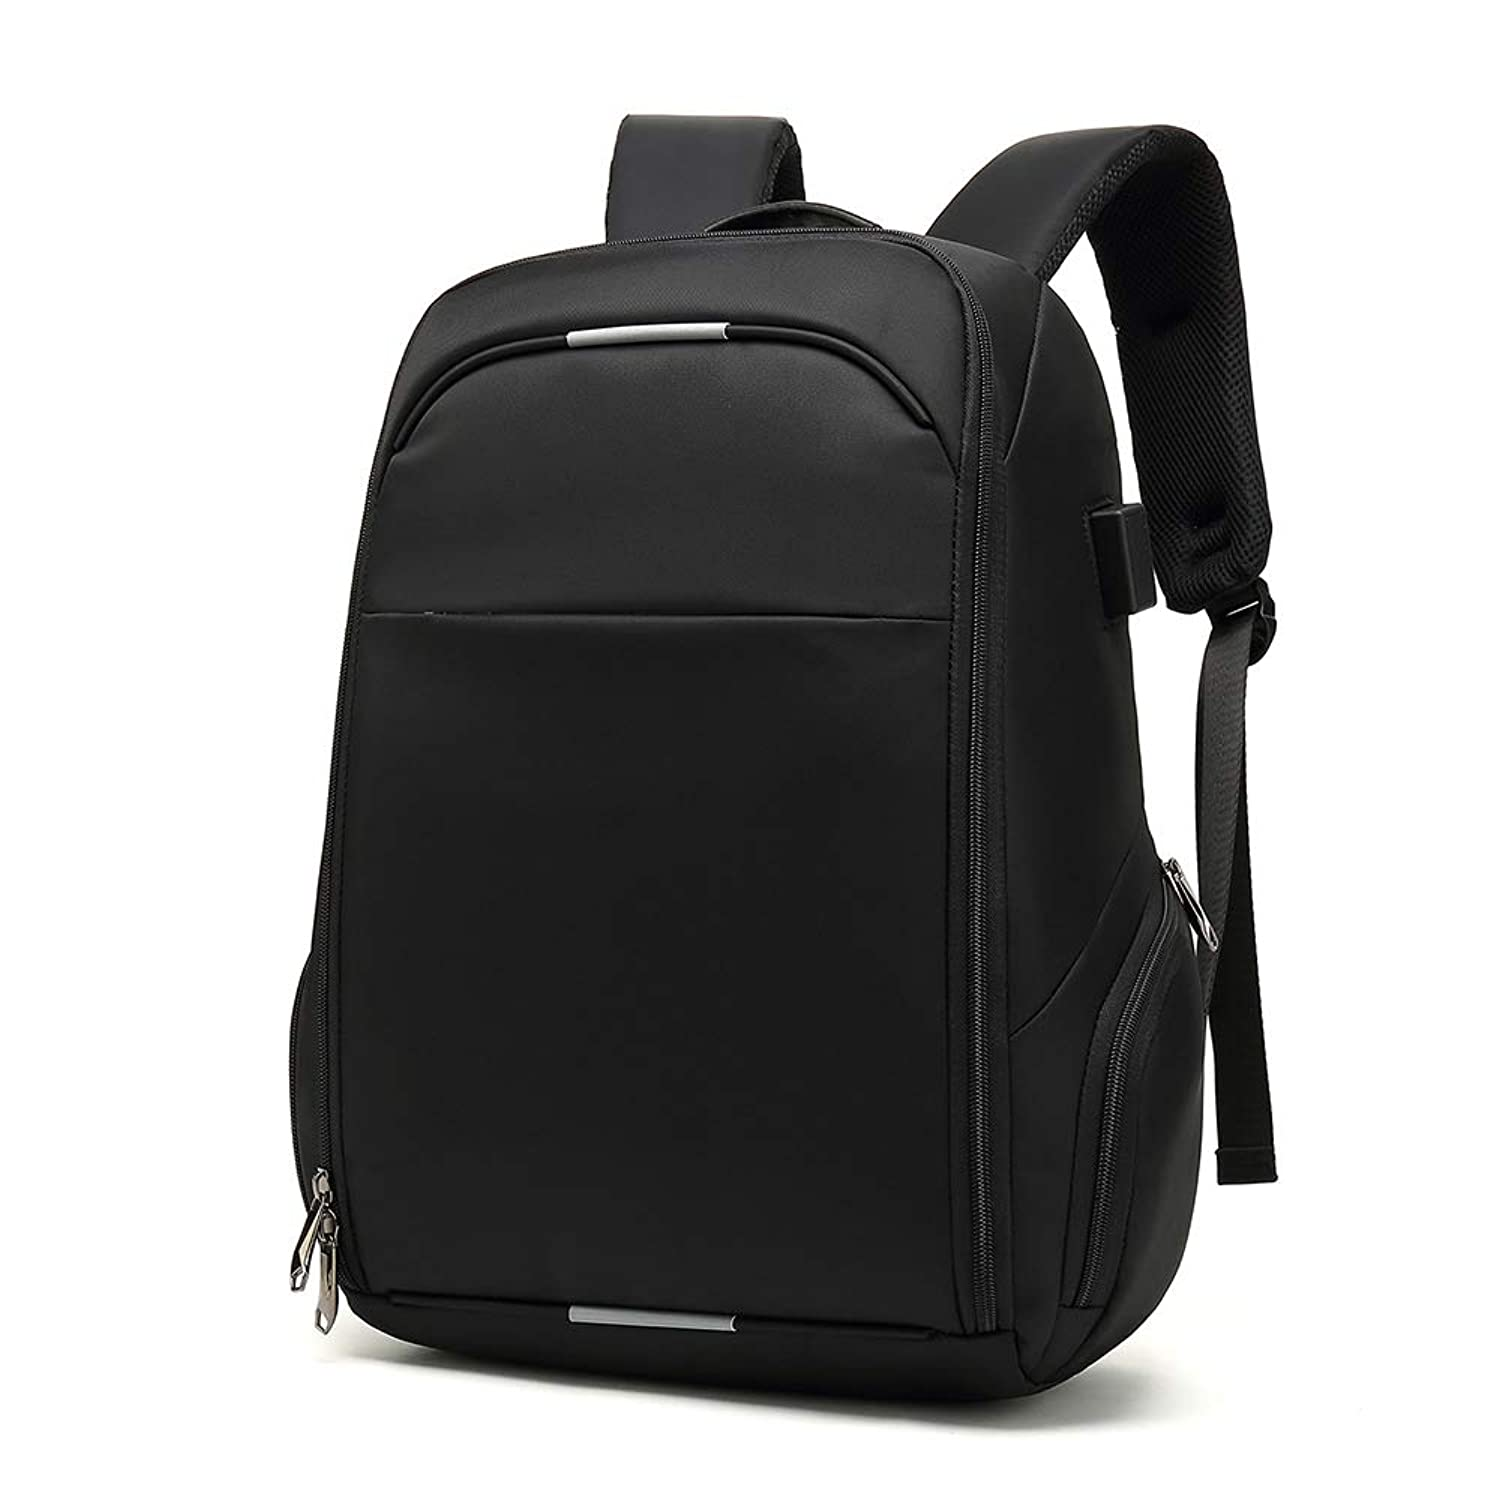 Business Travel Laptop Backpack for Women & Men, College School Computer Bag, Multi-Function Waterproof and Anti Theft, Large Capacity, Durable, USB Charging Port Fits 15.6 Inch Laptop (Gloss Black)